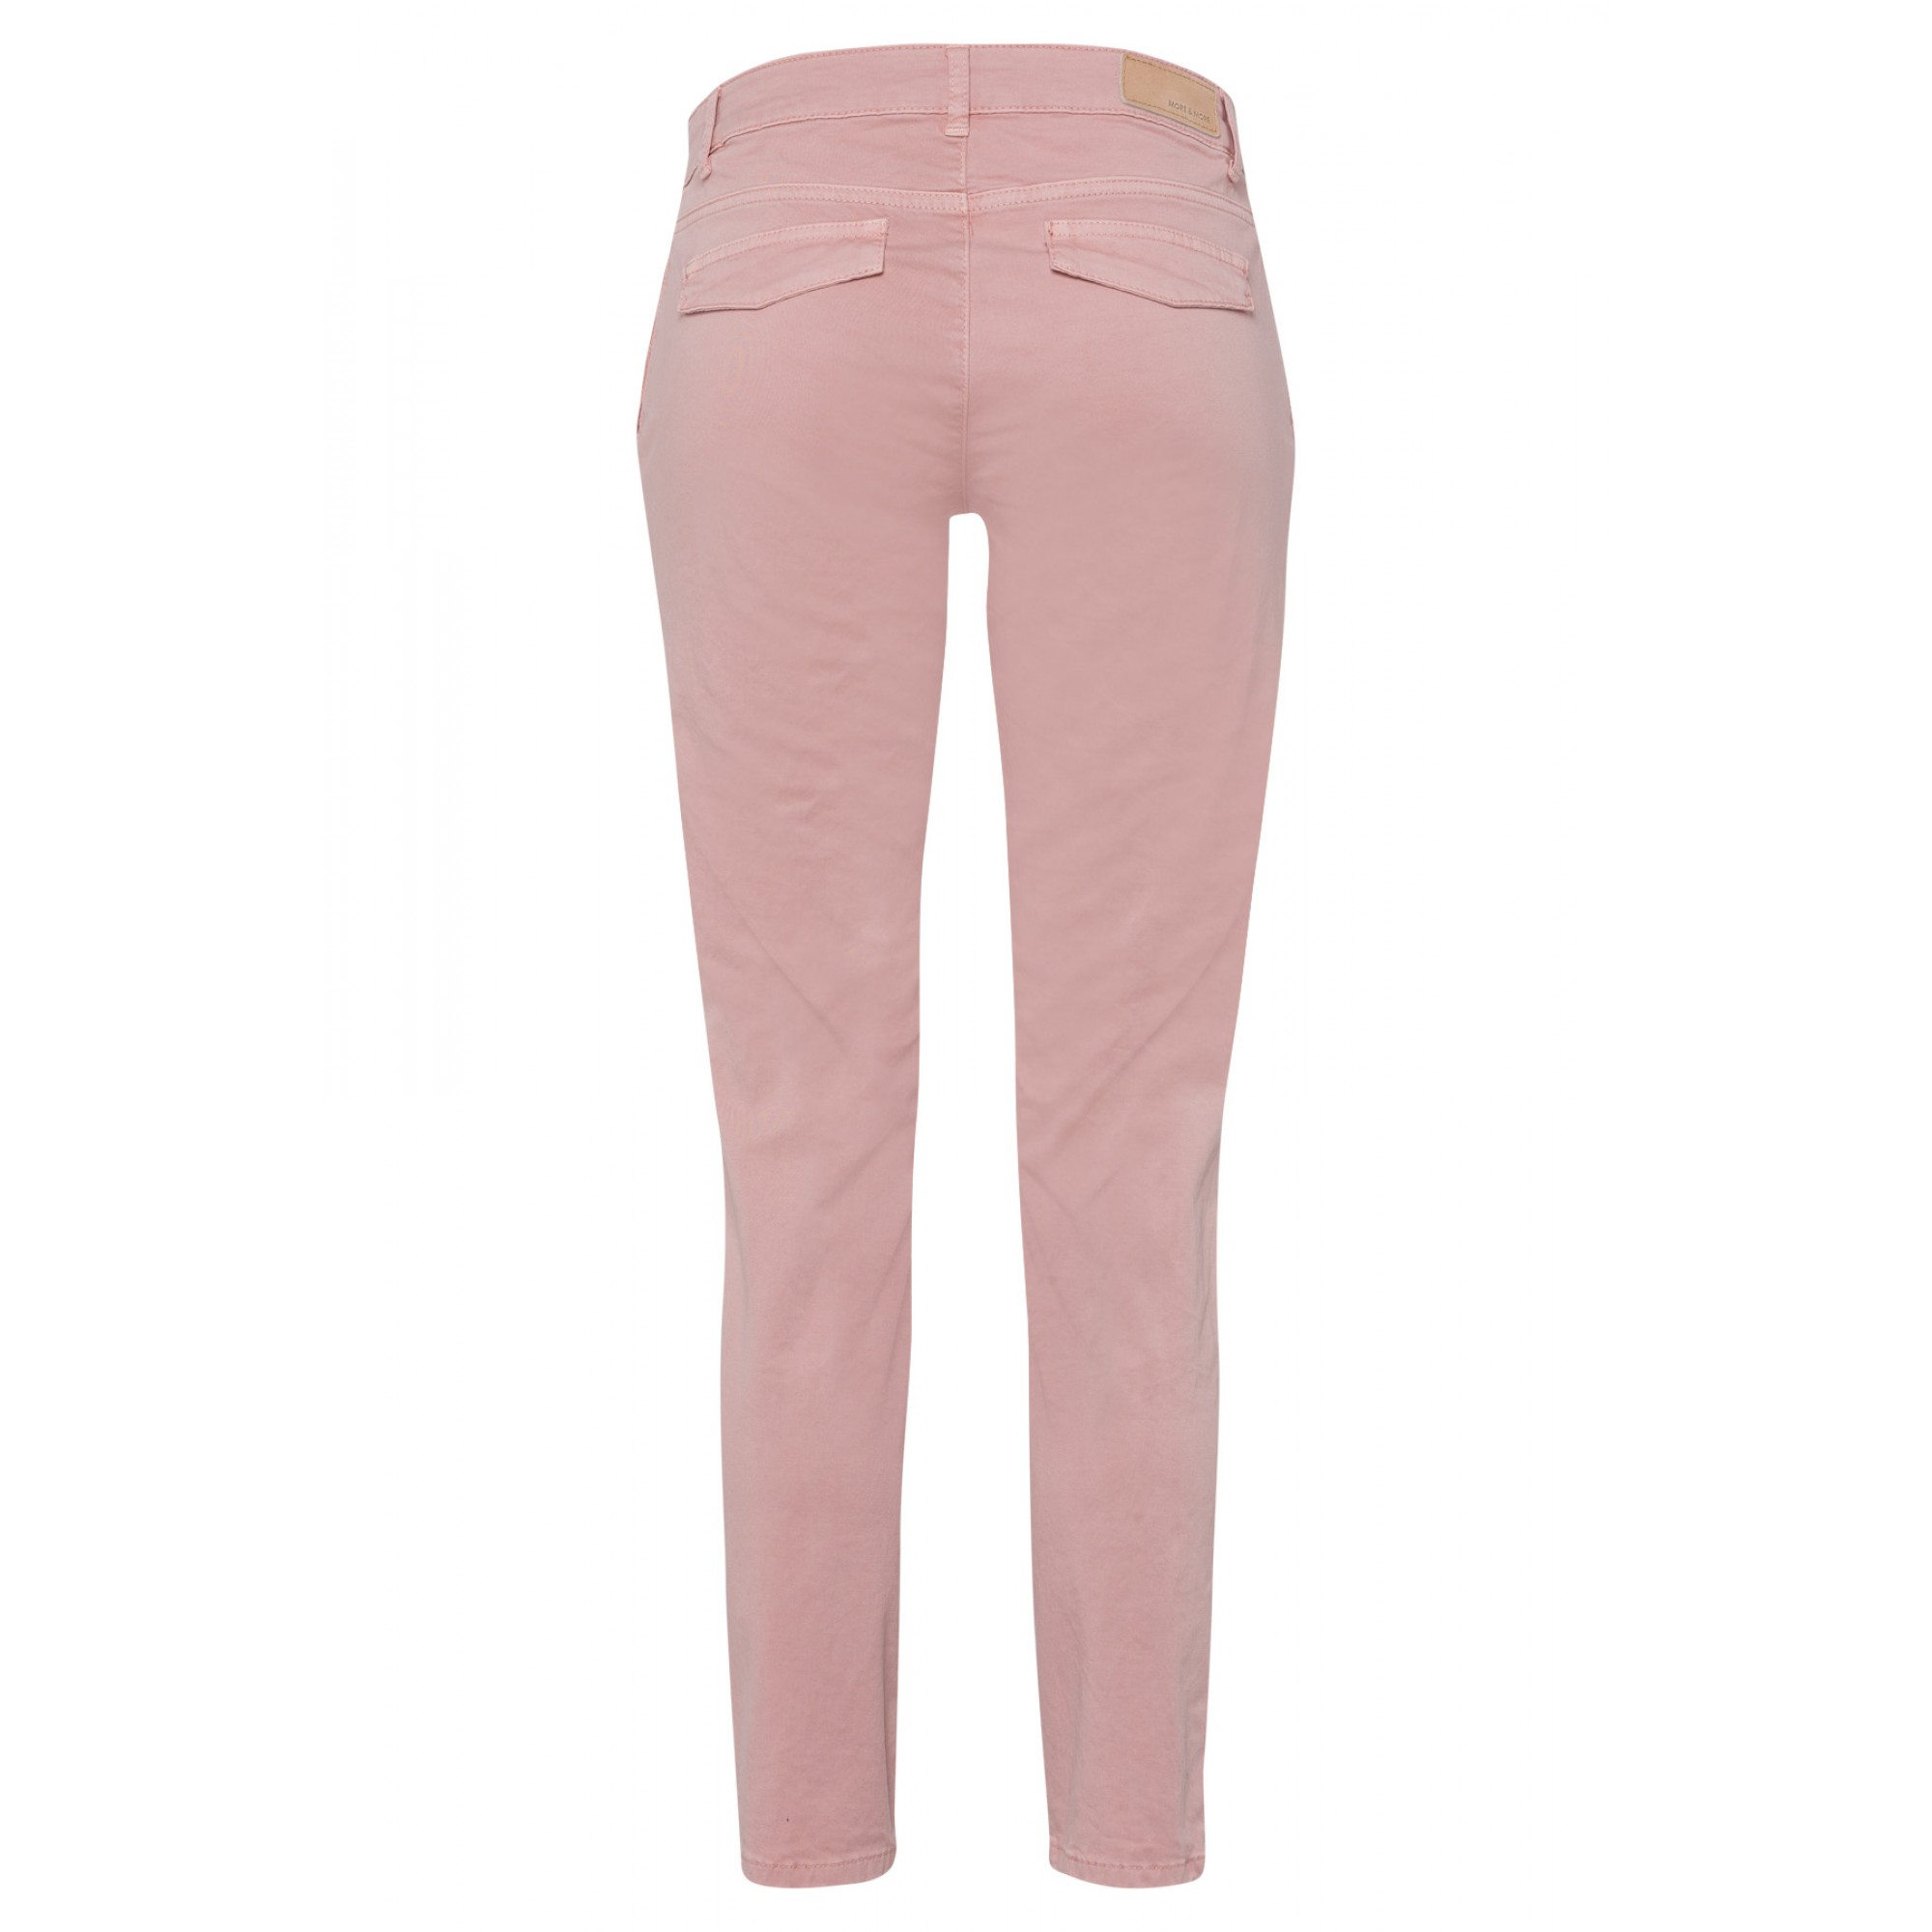 Baumwoll/Stretch Chino, rosé 01074010-0814 2